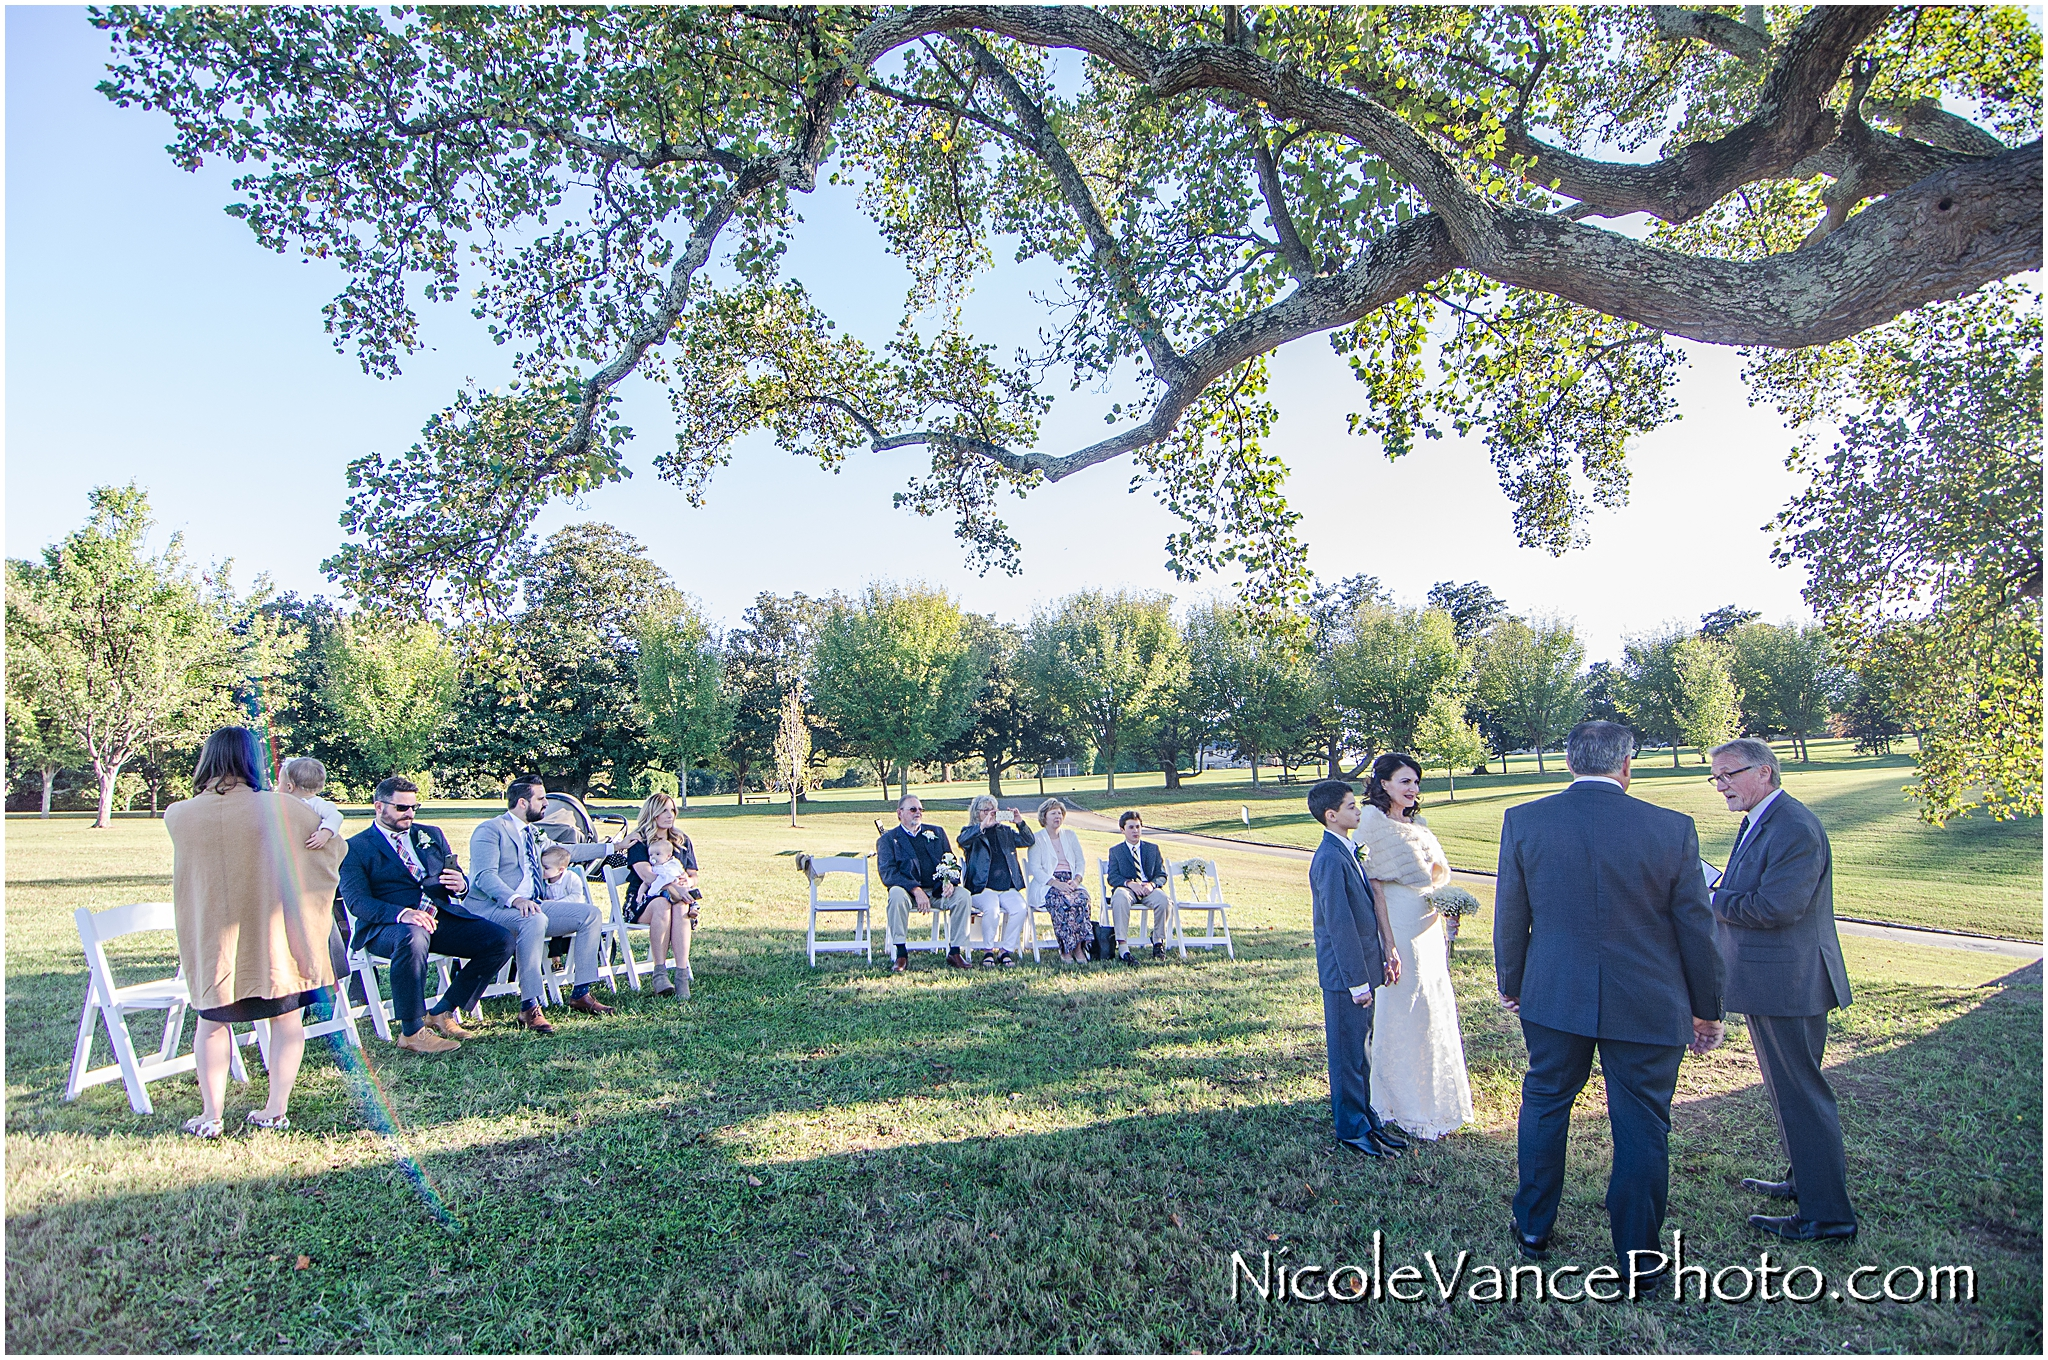 The wedding ceremony at Maymont Park in Richmond, Virginia.